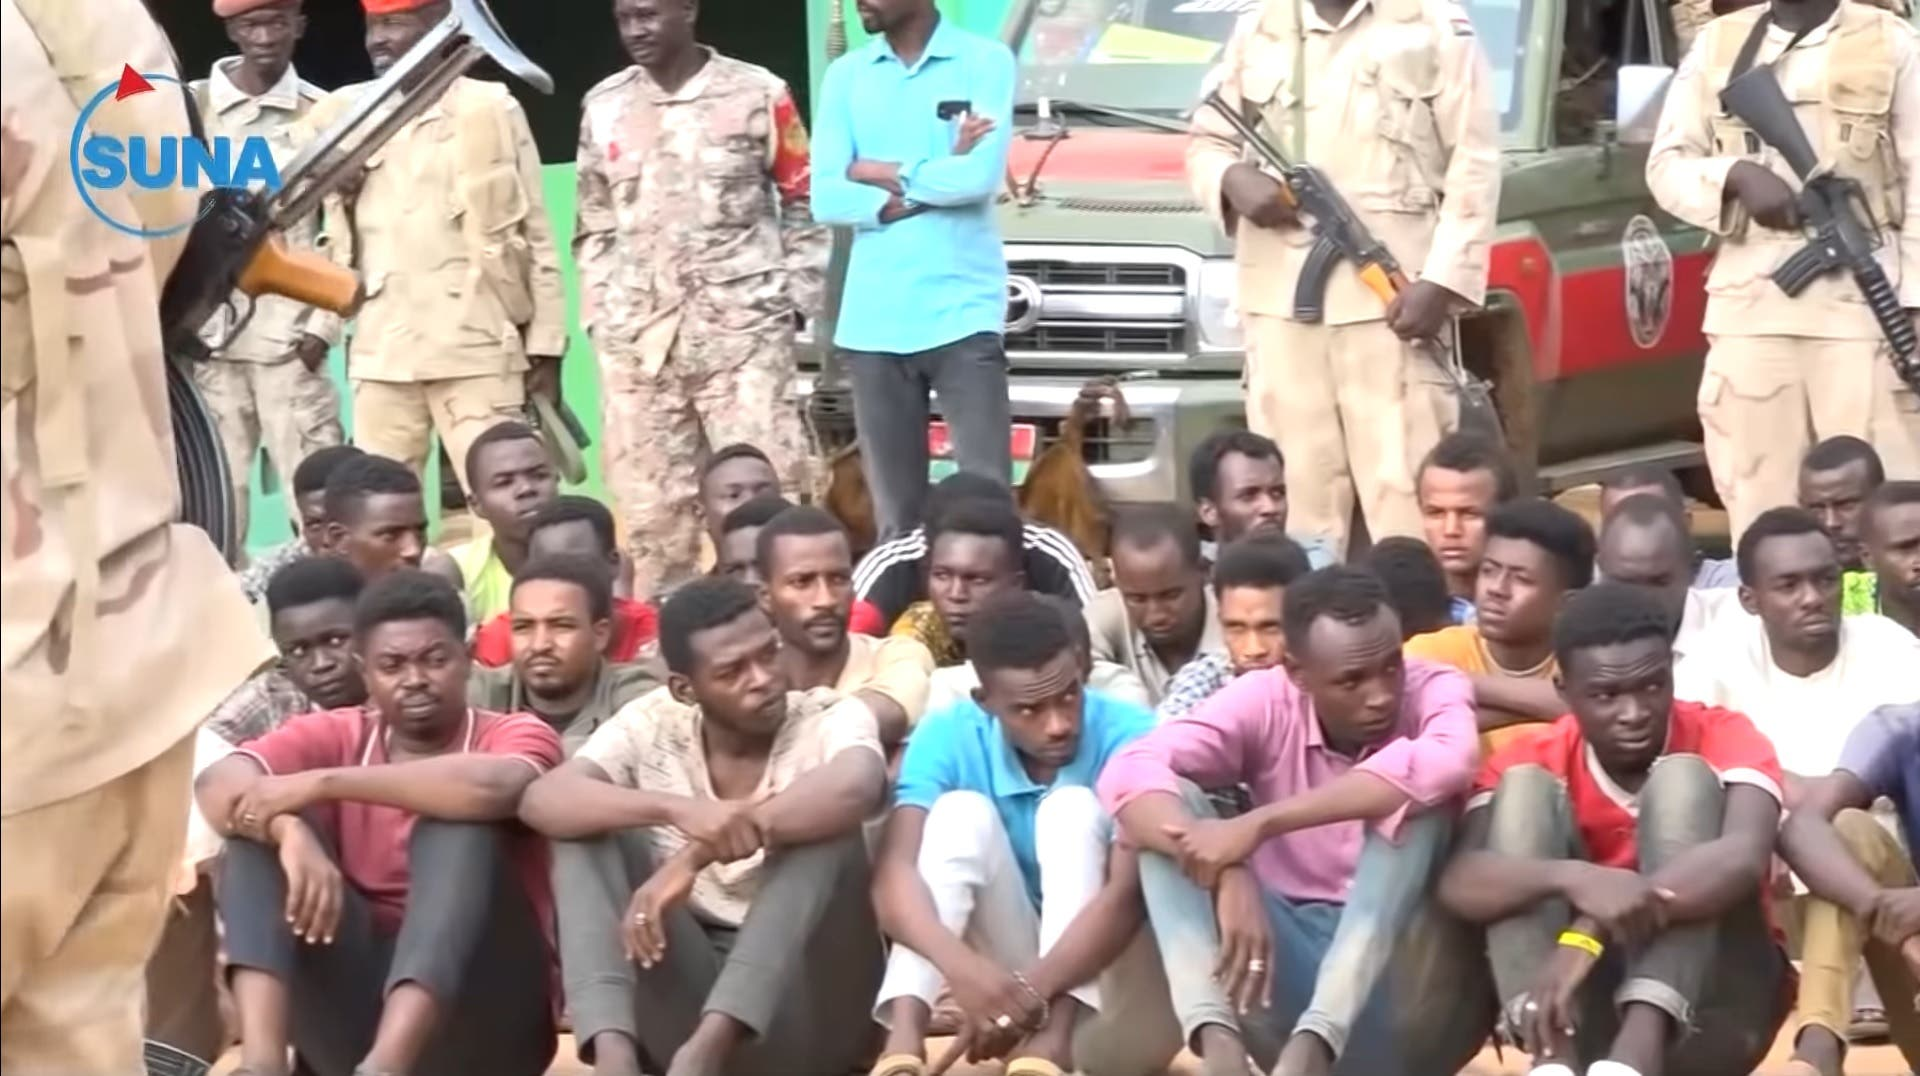 A screengrab of a video published by Sudan News Agency on June 29, 2020 showing some of the 122 fighters who were allegedly intending to serve as mercenaries in Libya's civil war . (Twitter/via @SUNA_AGENCY)